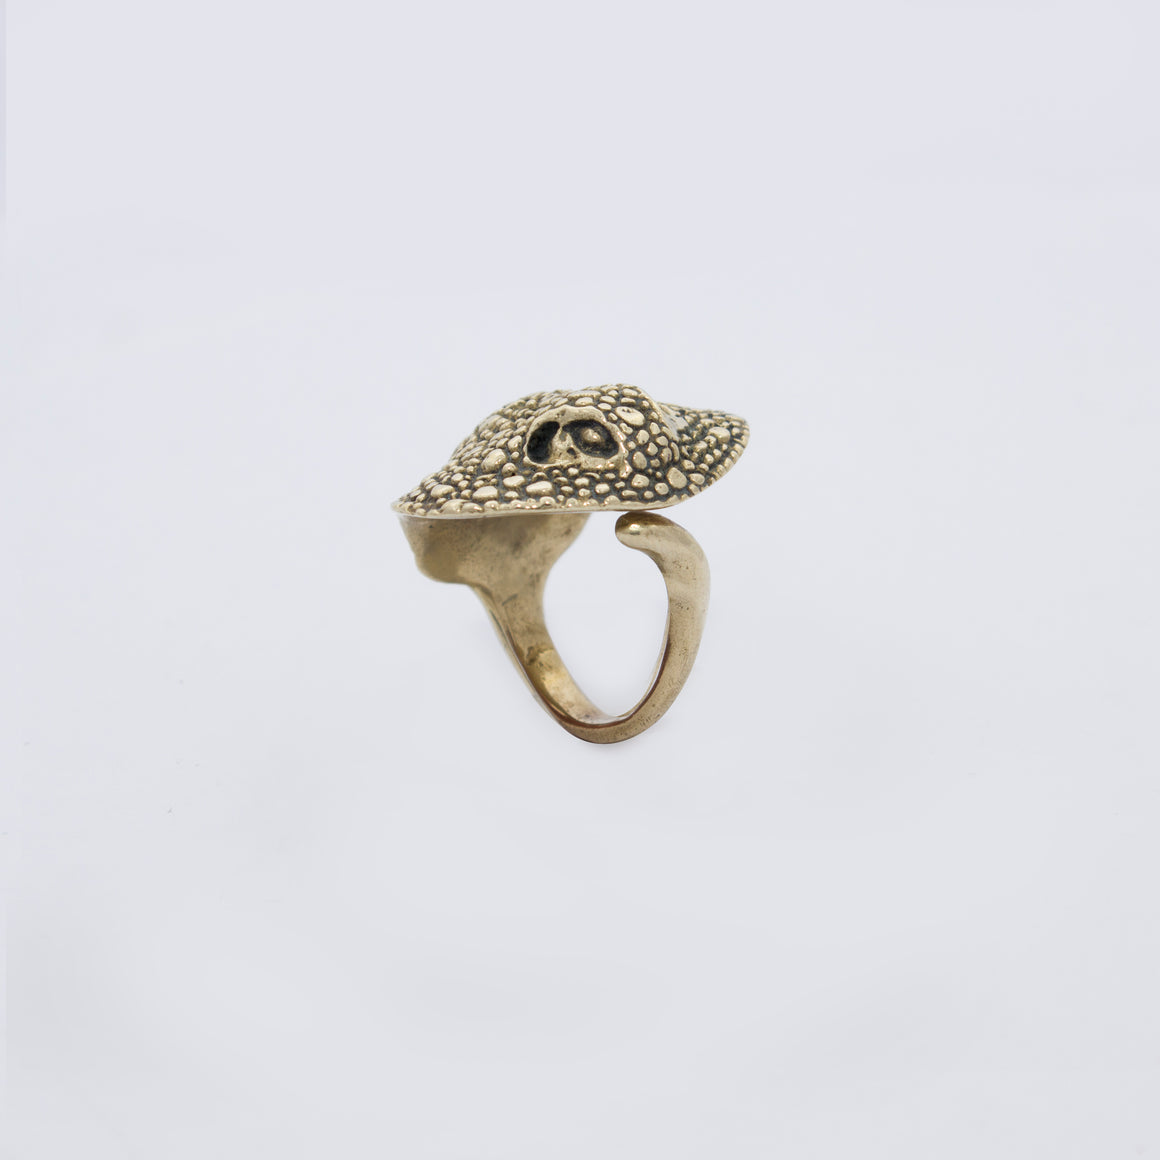 YELLOW BRASS STINGRAY RING